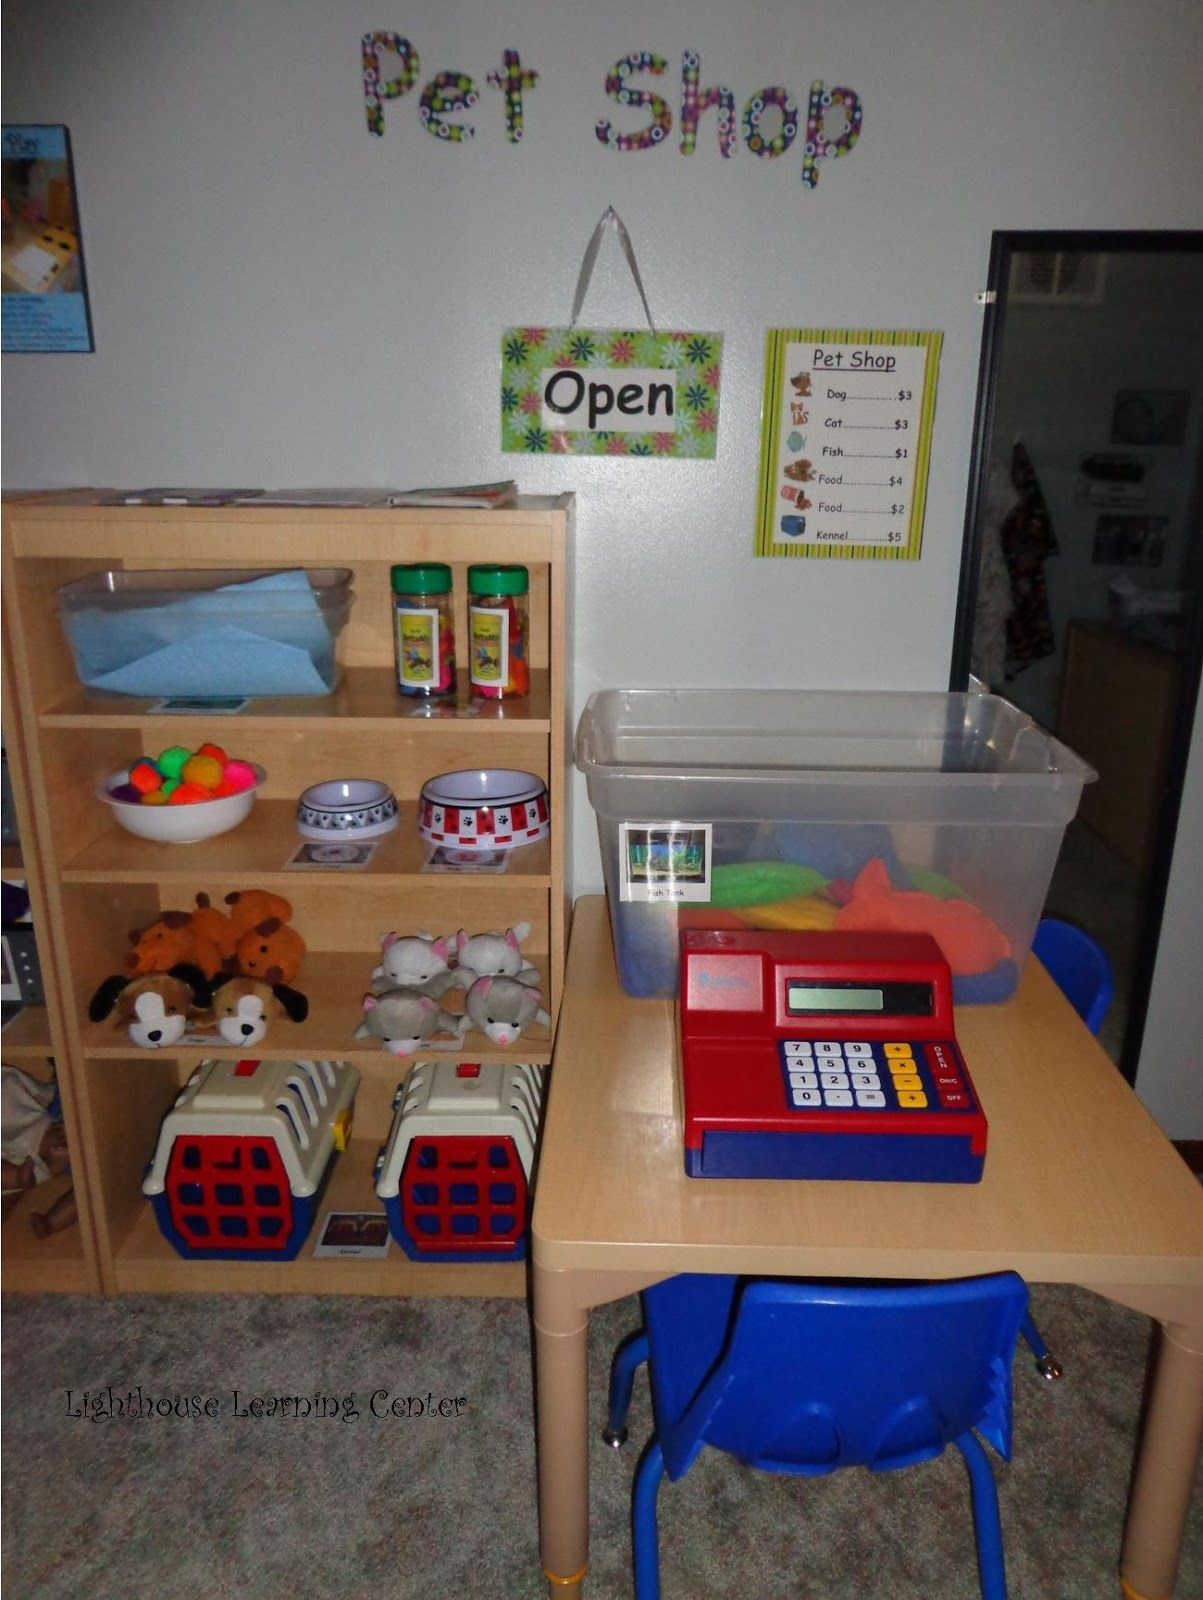 Pet Shop Dramatic Play Lighthouse Learning Center Our Pet Shop Dramatic Play Preschool Dramatic Play Dramatic Play Area